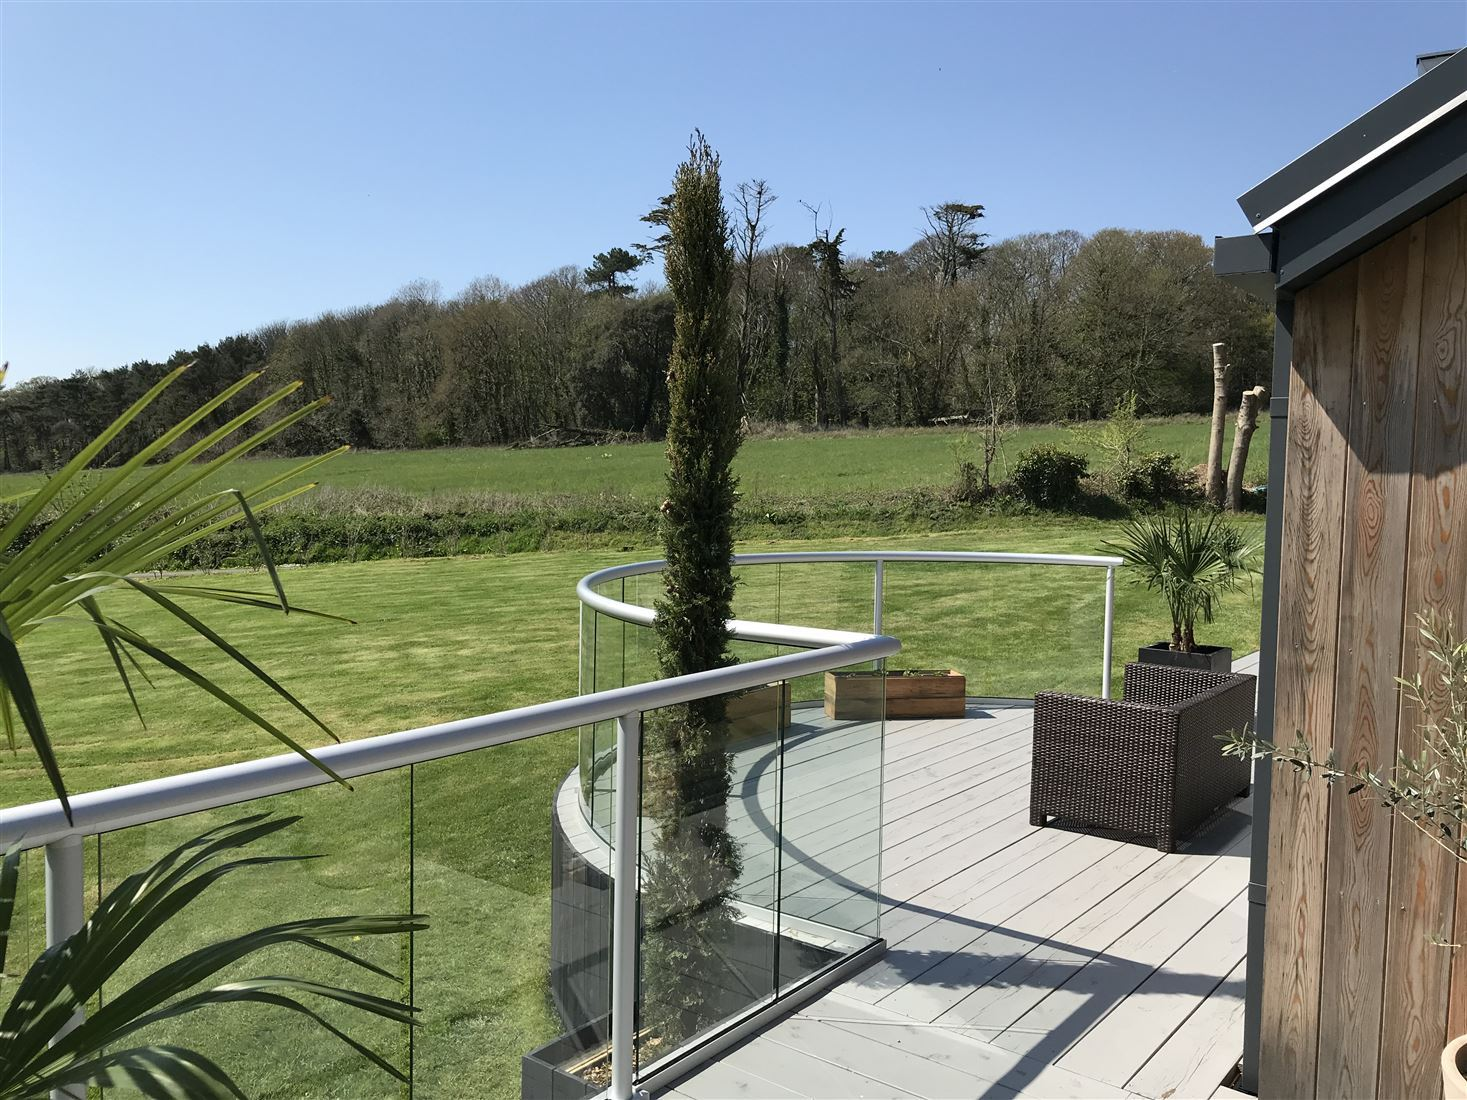 Silver Orbit Glass Balustrading adds the finishing touches to a property renovation in the Isle of Wight